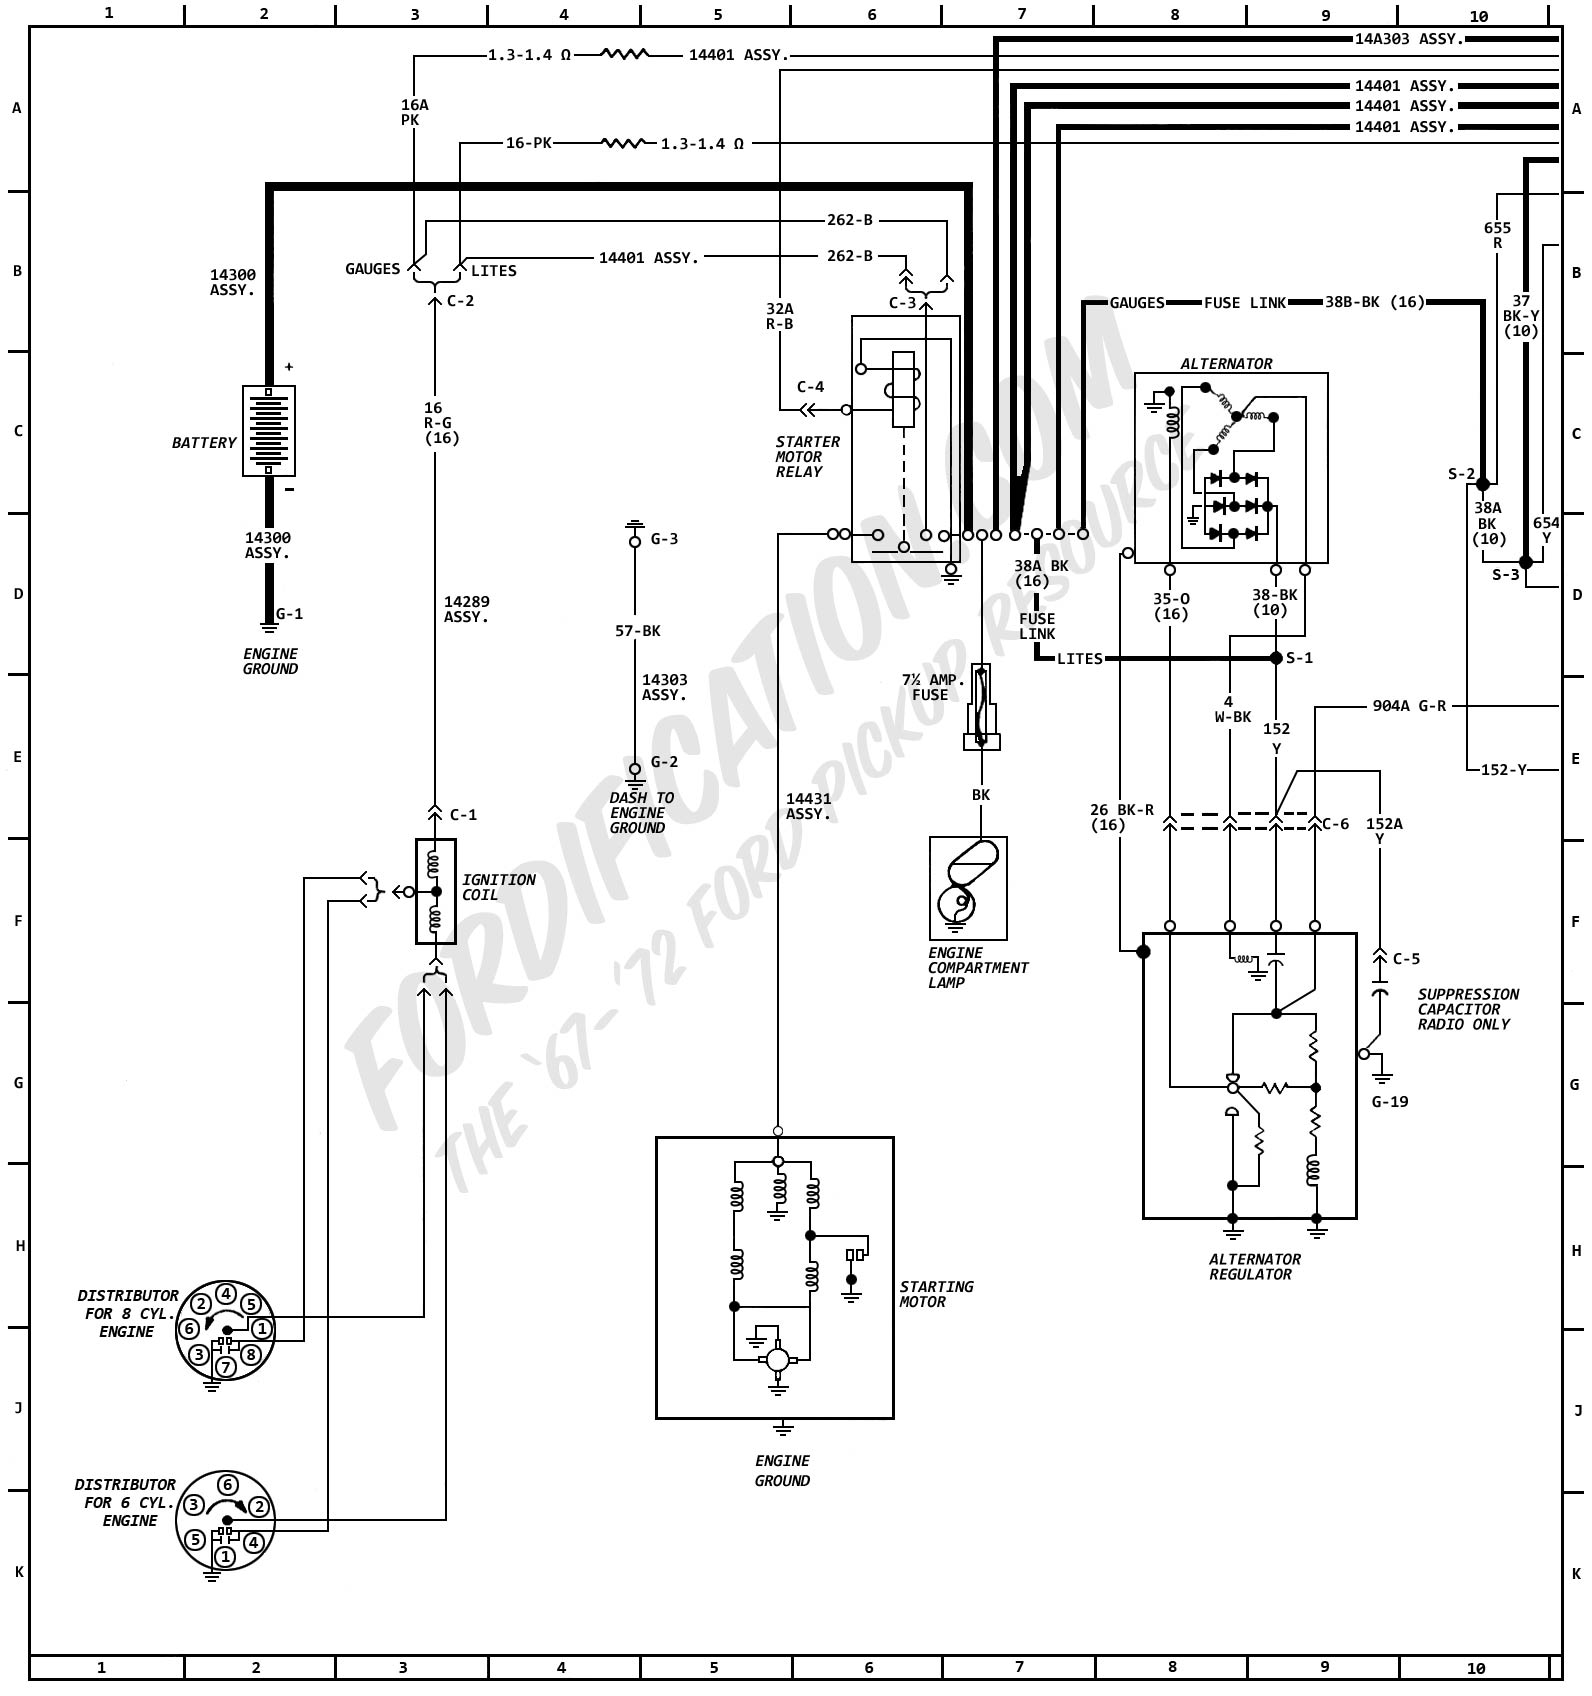 1972 Ford Truck Wiring Diagrams Switch Schematic Page 1 Sec